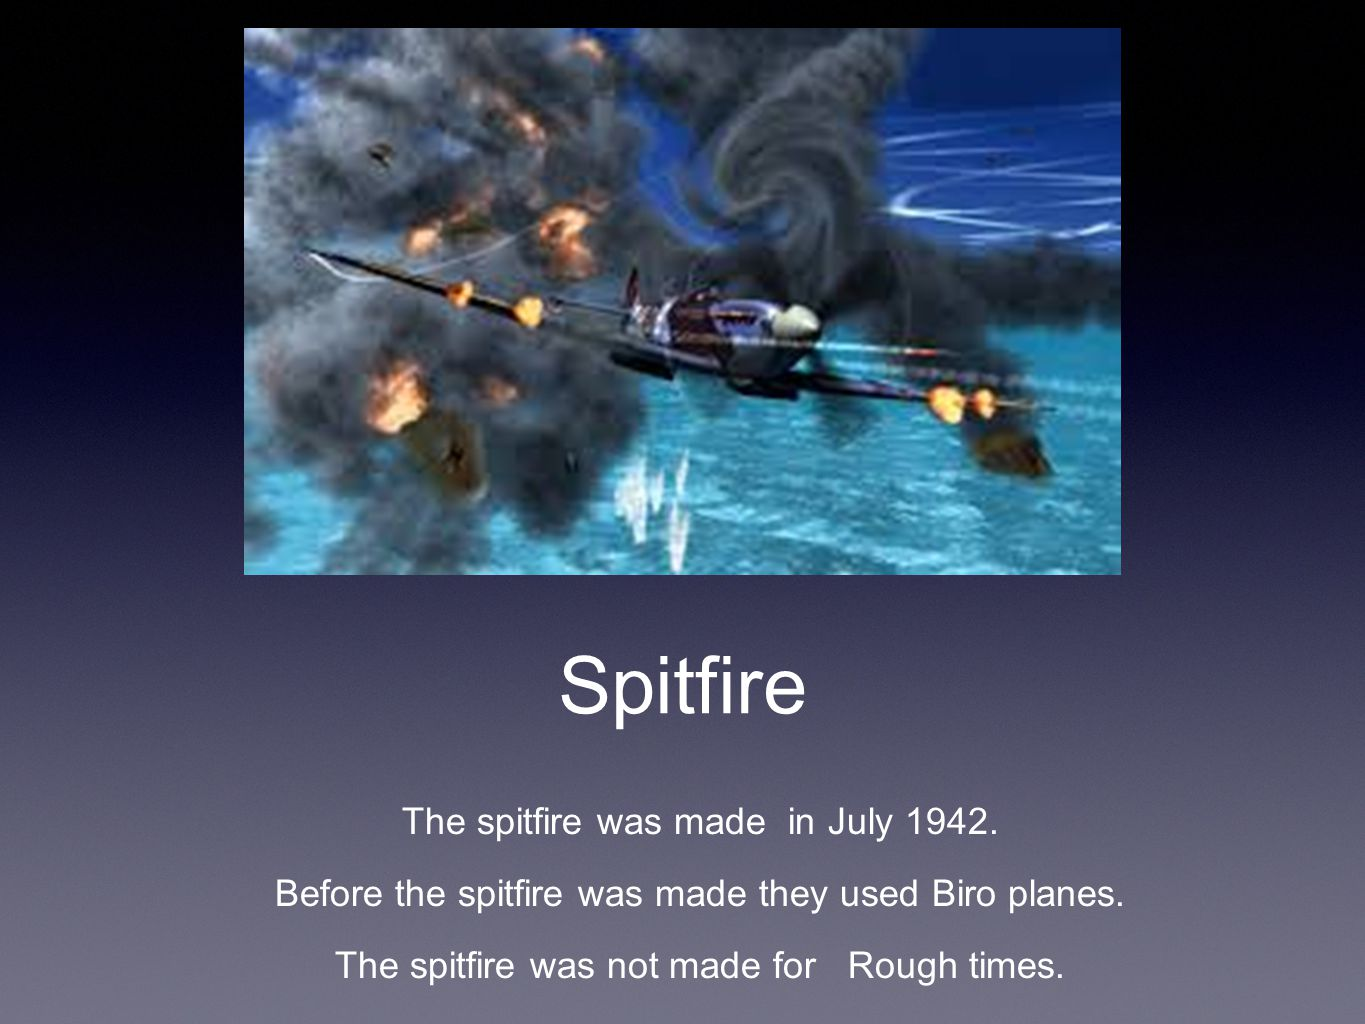 Spitfire The spitfire was made in July 1942. Before the spitfire was made they used Biro planes.